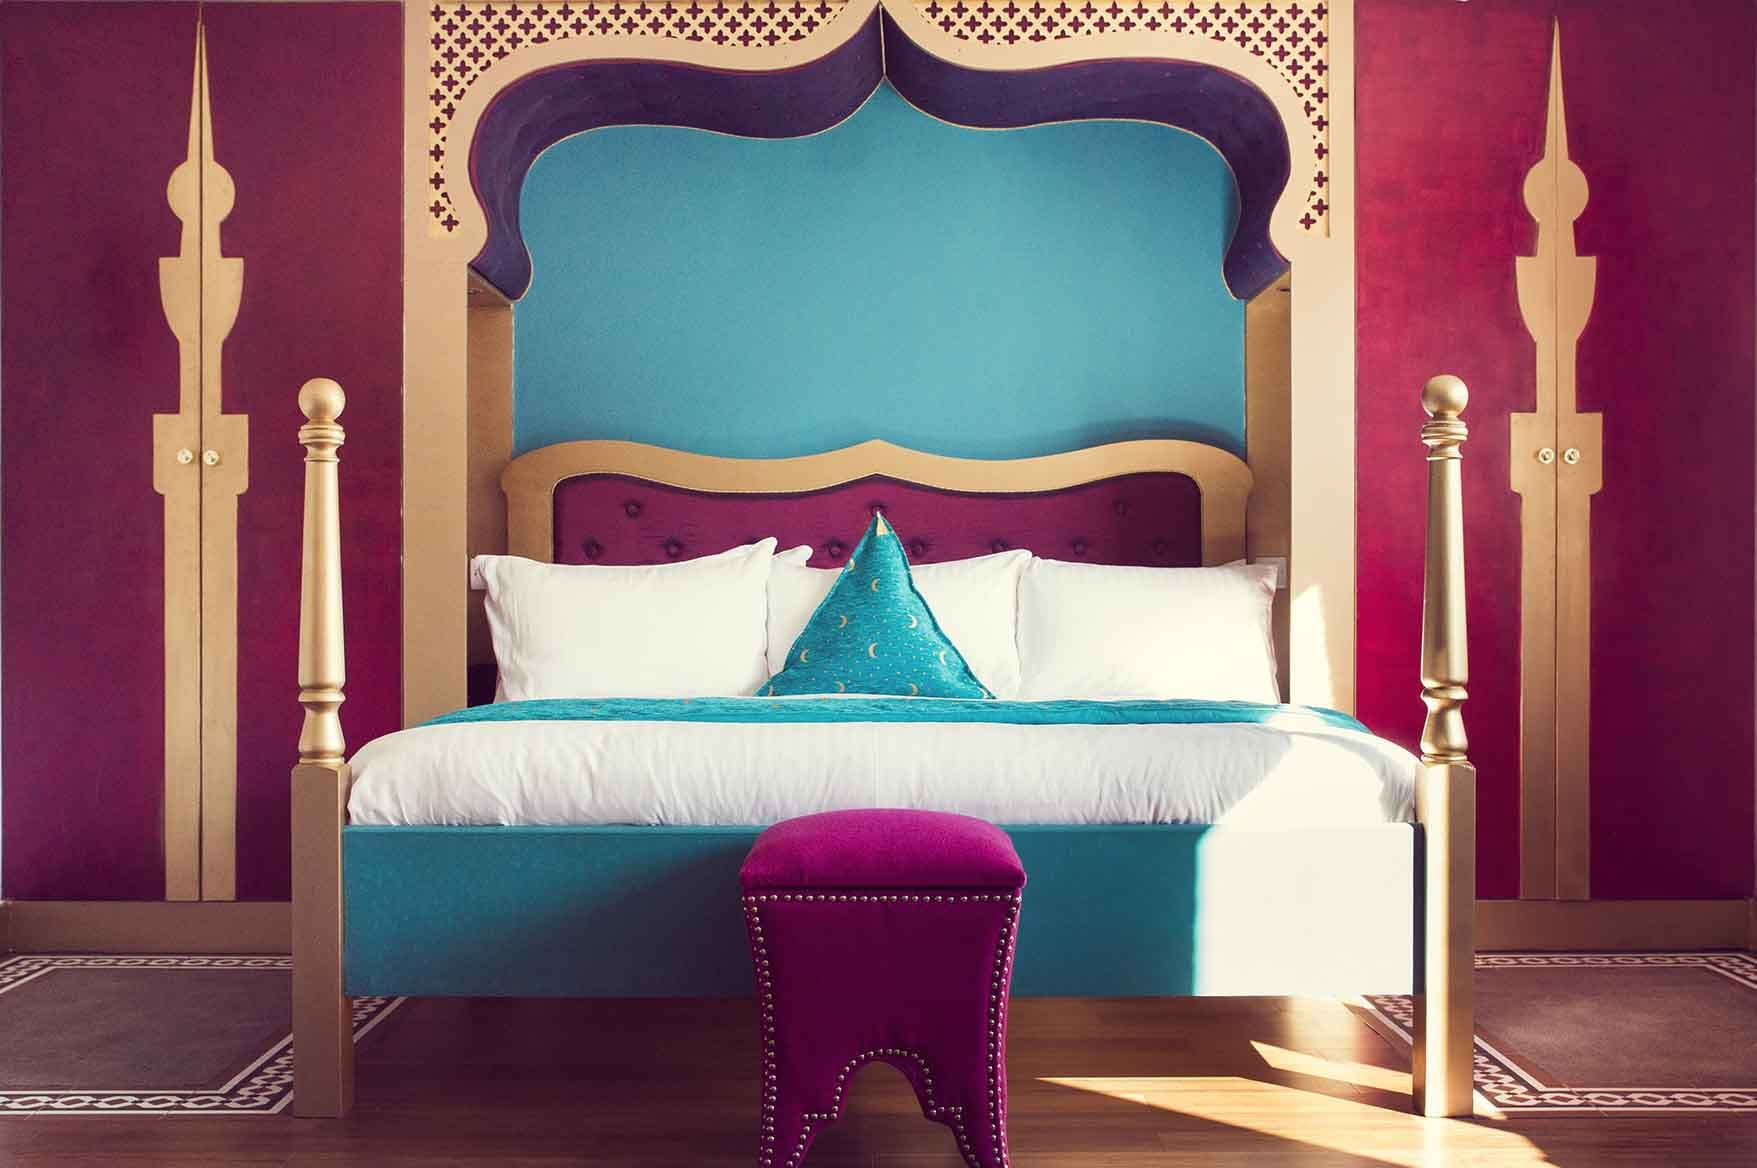 Good Pin By The Party Lady On ARbian Nights, Moroccan, Bollywood Party |  Pinterest | Arabian Nights Bedroom, Arabian Nights And Bedrooms